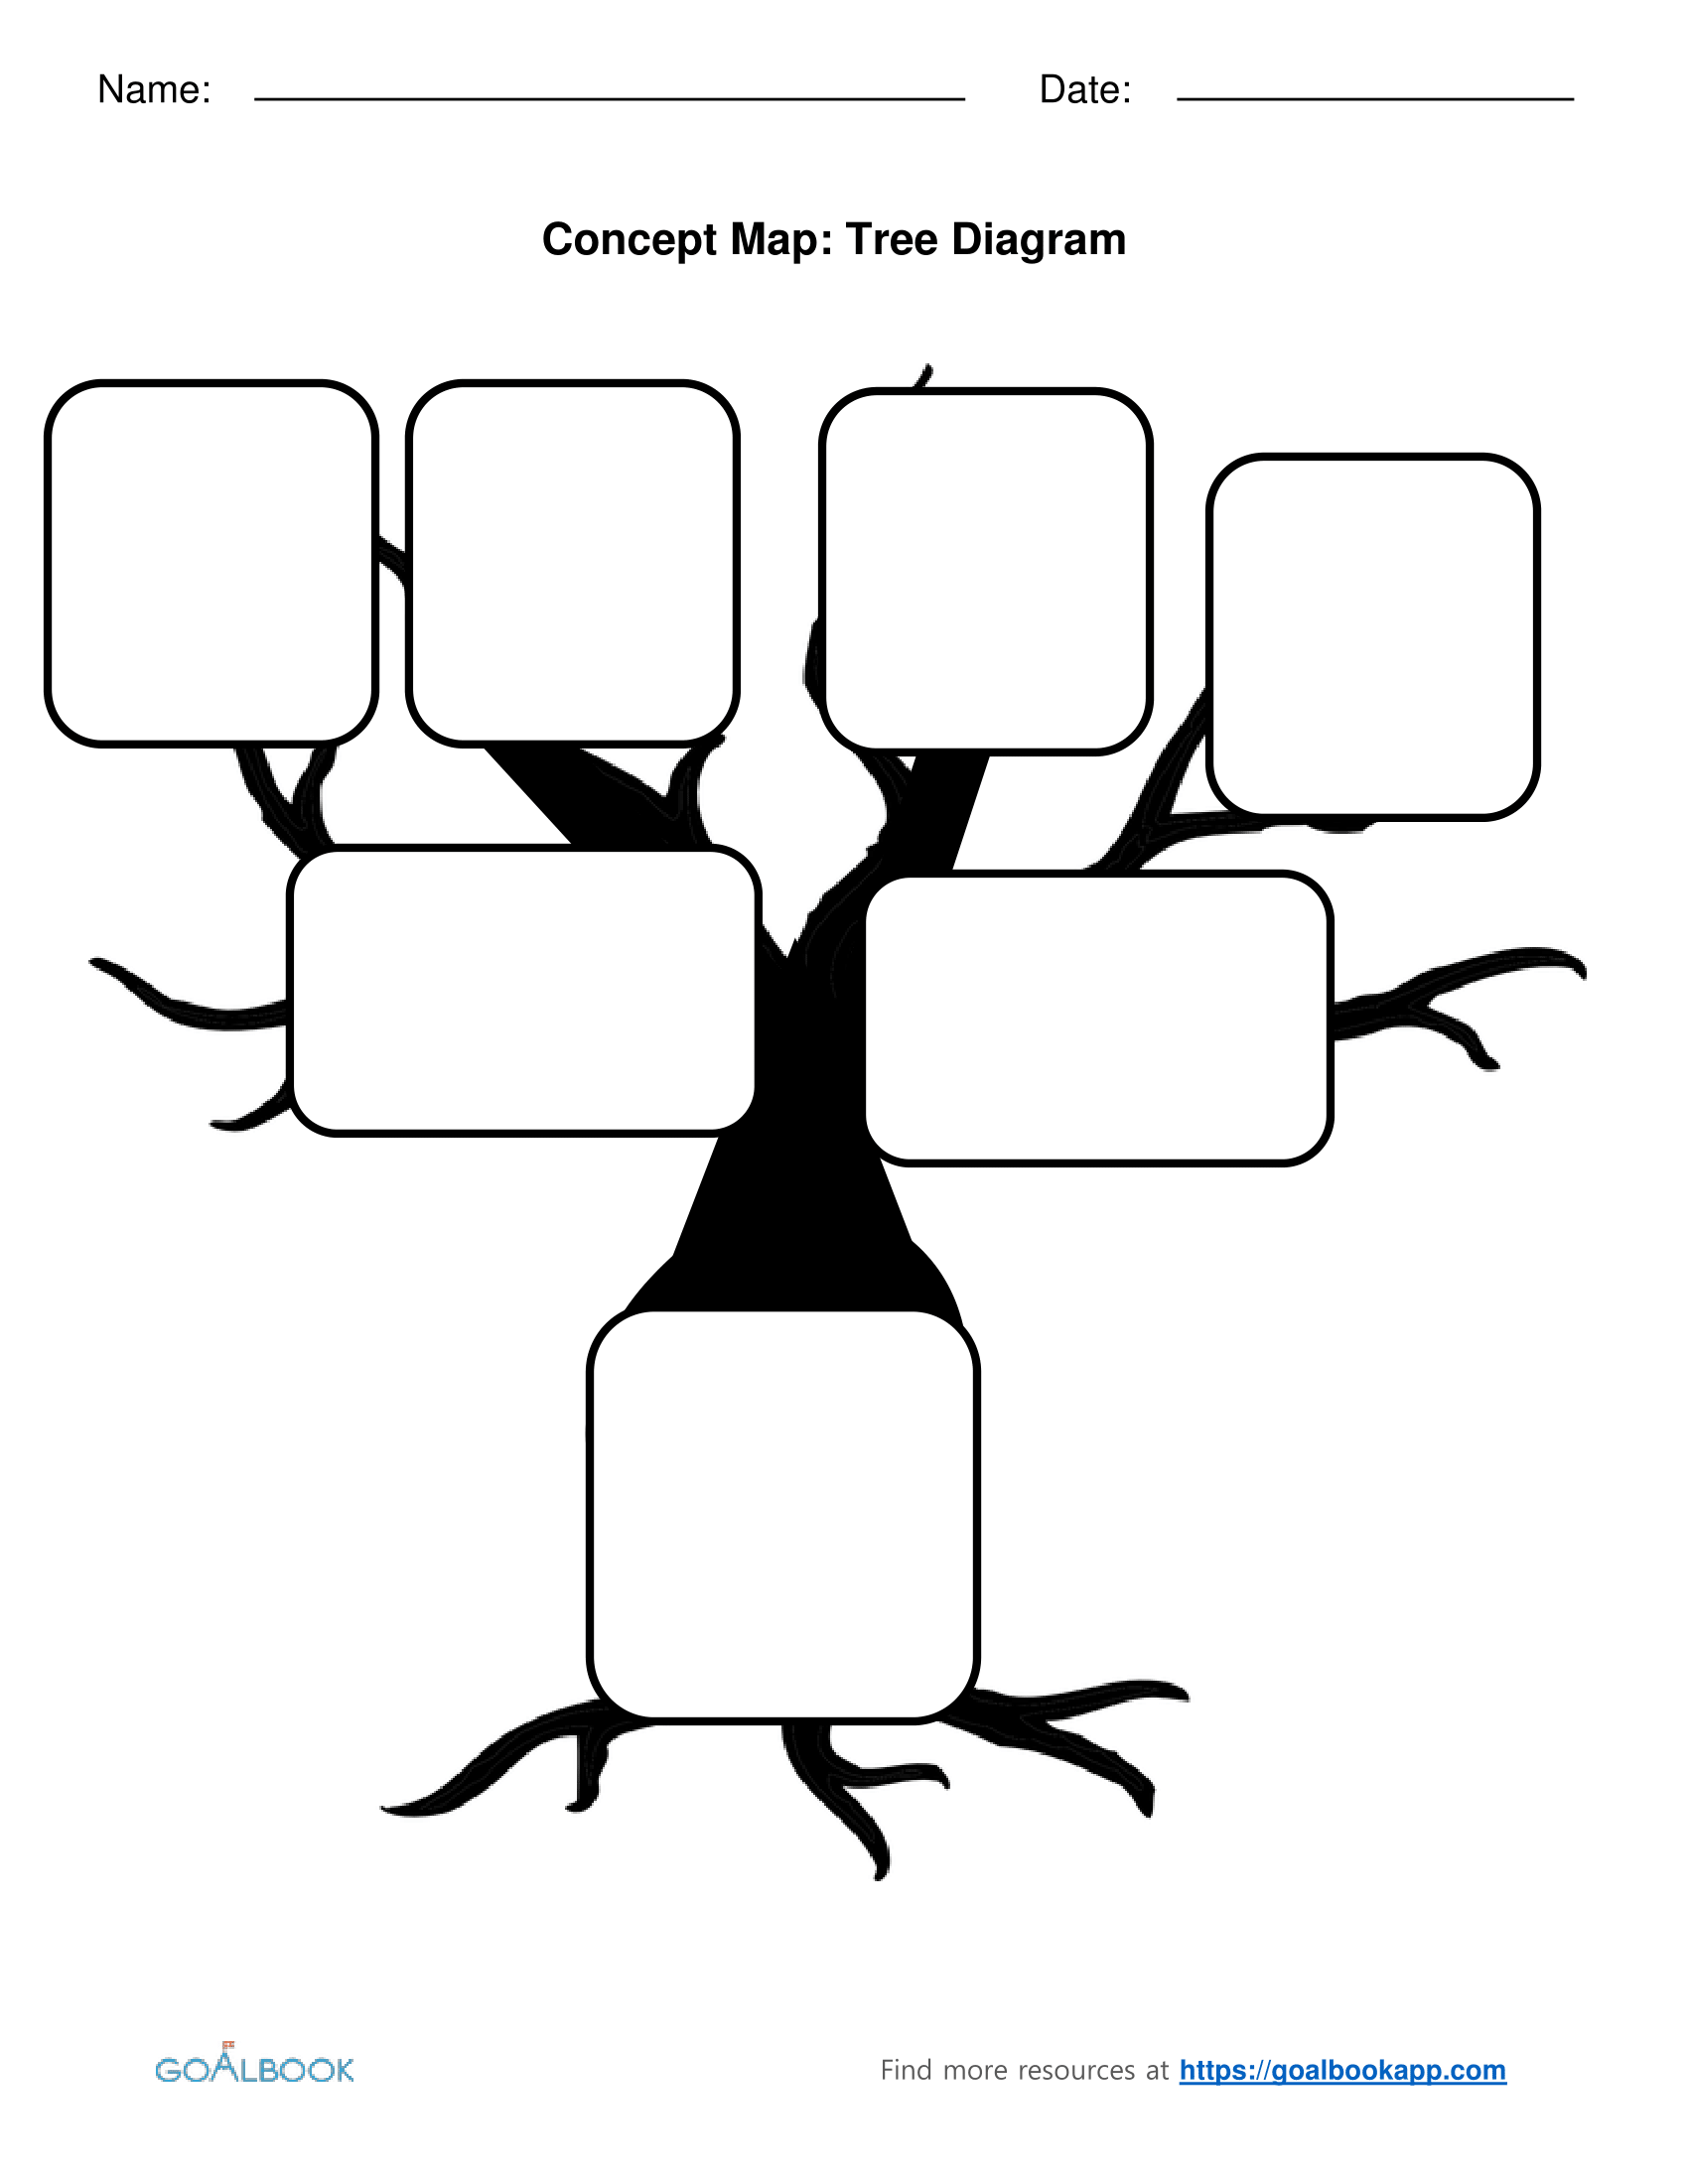 mind map tree diagram